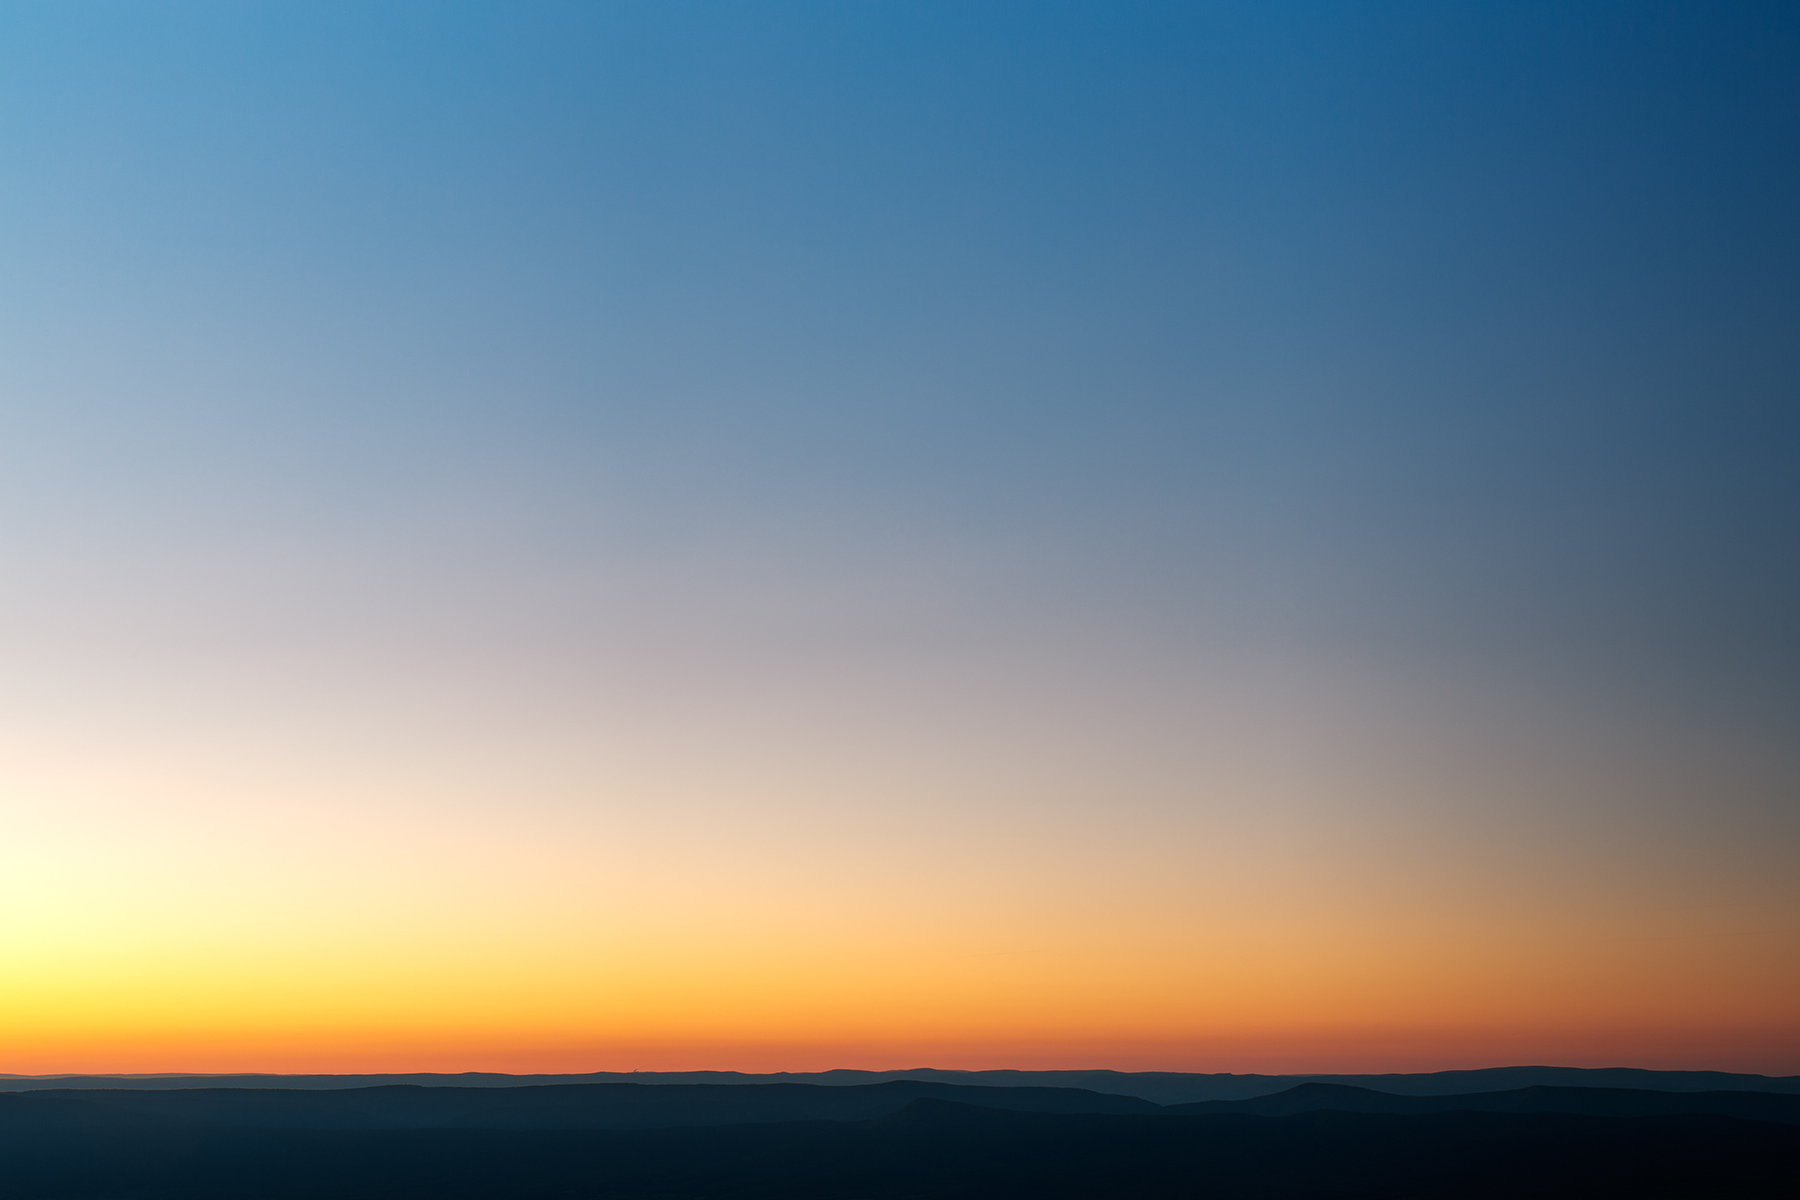 Shenandoah twilight minimalism - hdr photo